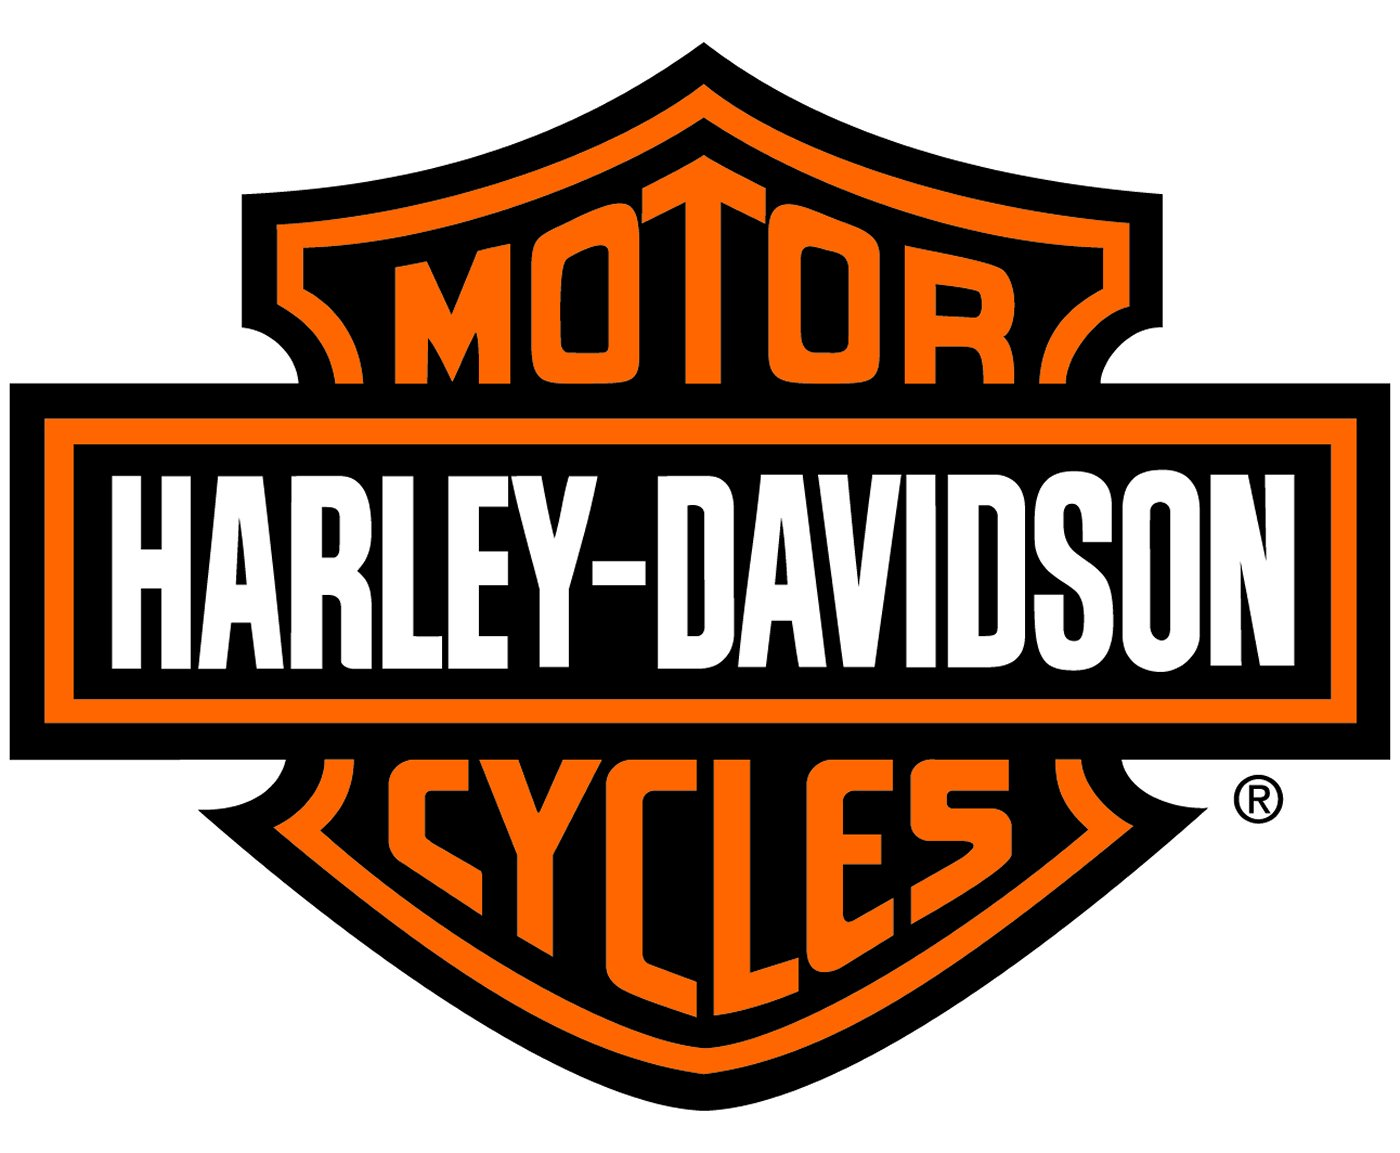 Harley Davidson Logo Rides Without Words Winthrop